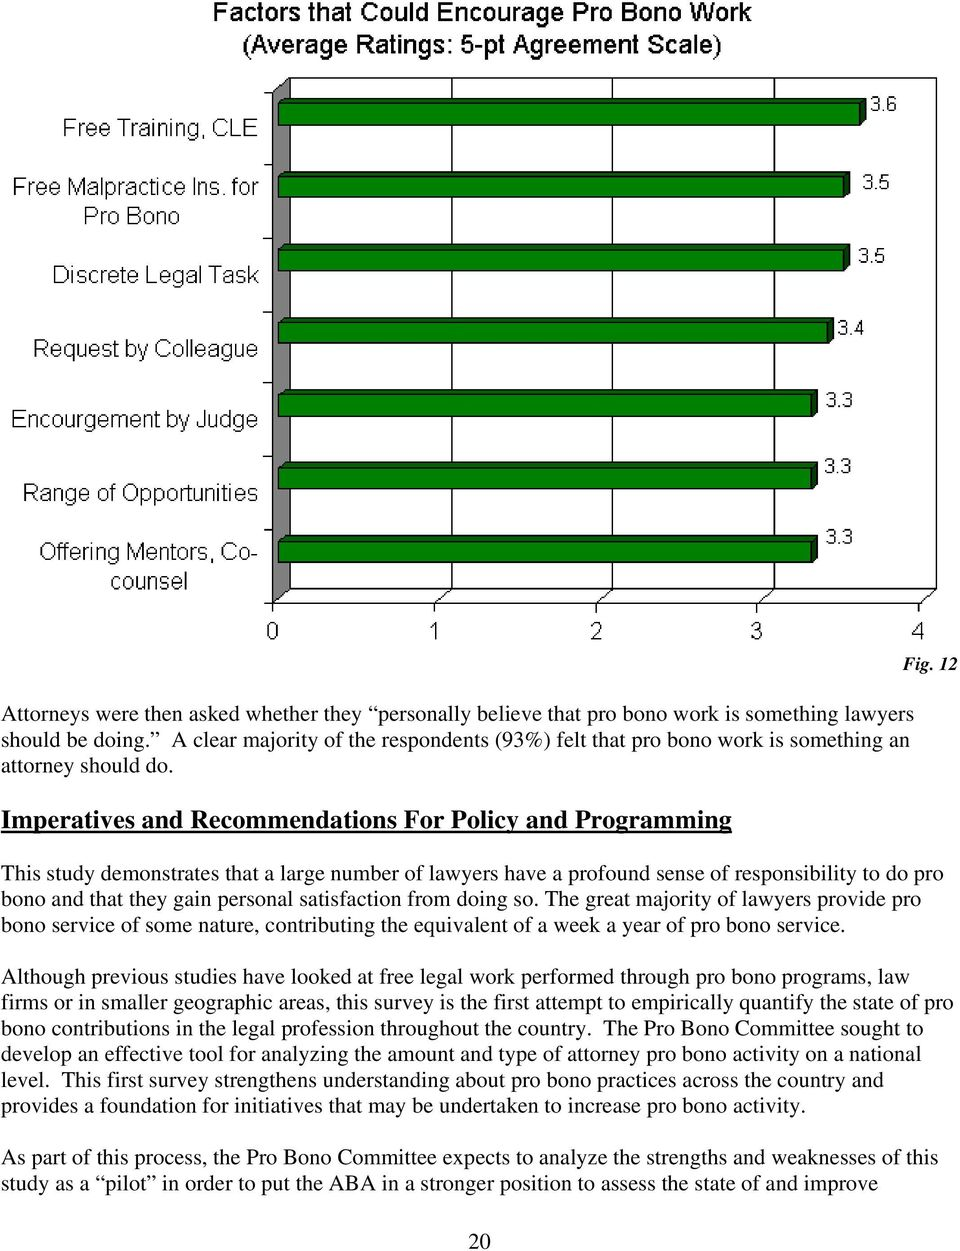 Imperatives and Recommendations For Policy and Programming This study demonstrates that a large number of lawyers have a profound sense of responsibility to do pro bono and that they gain personal